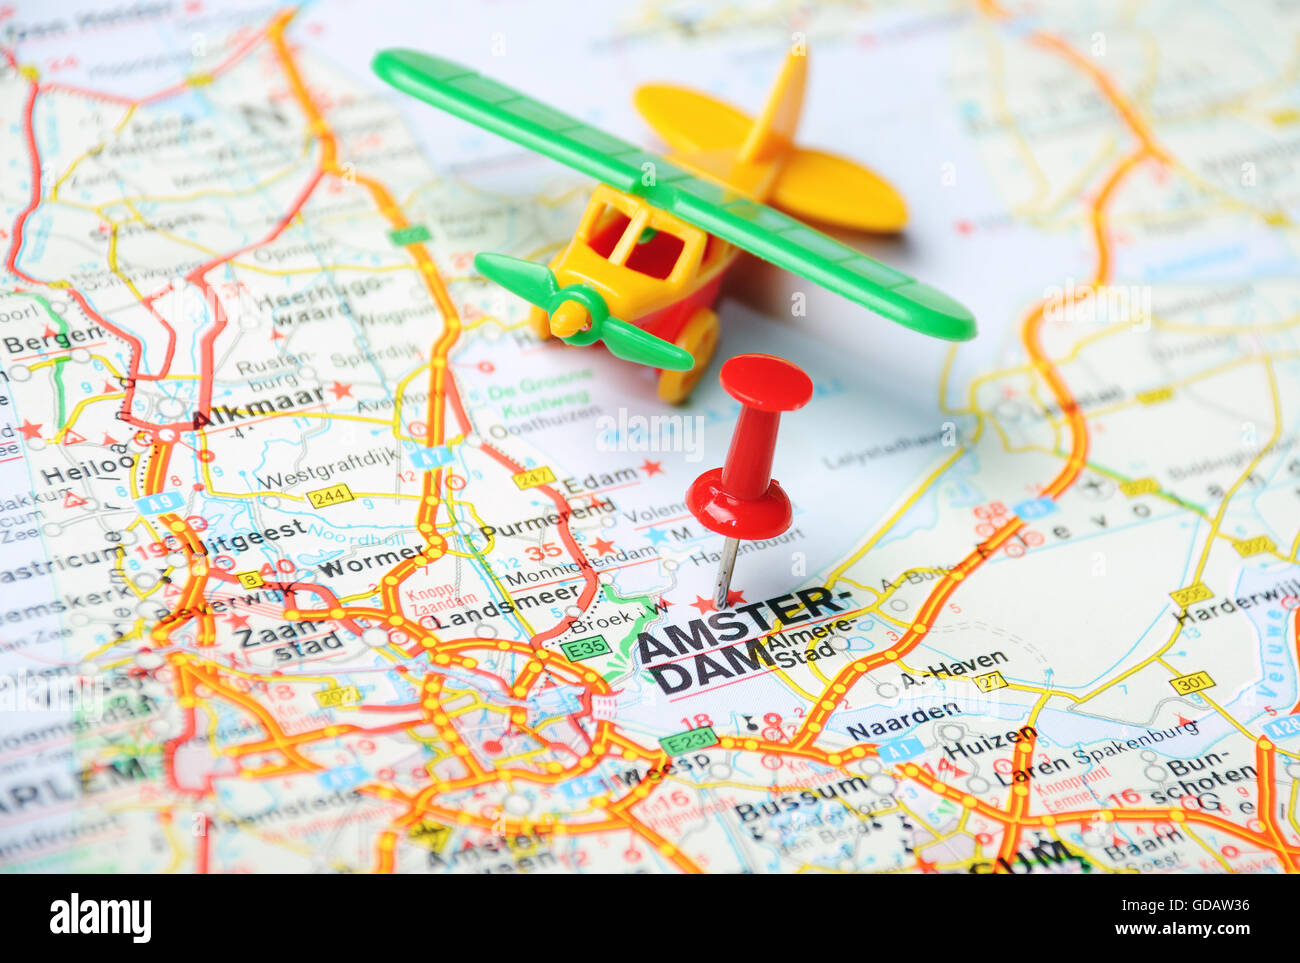 Close up of Amsterdam Netherlands map with red pin and airplane